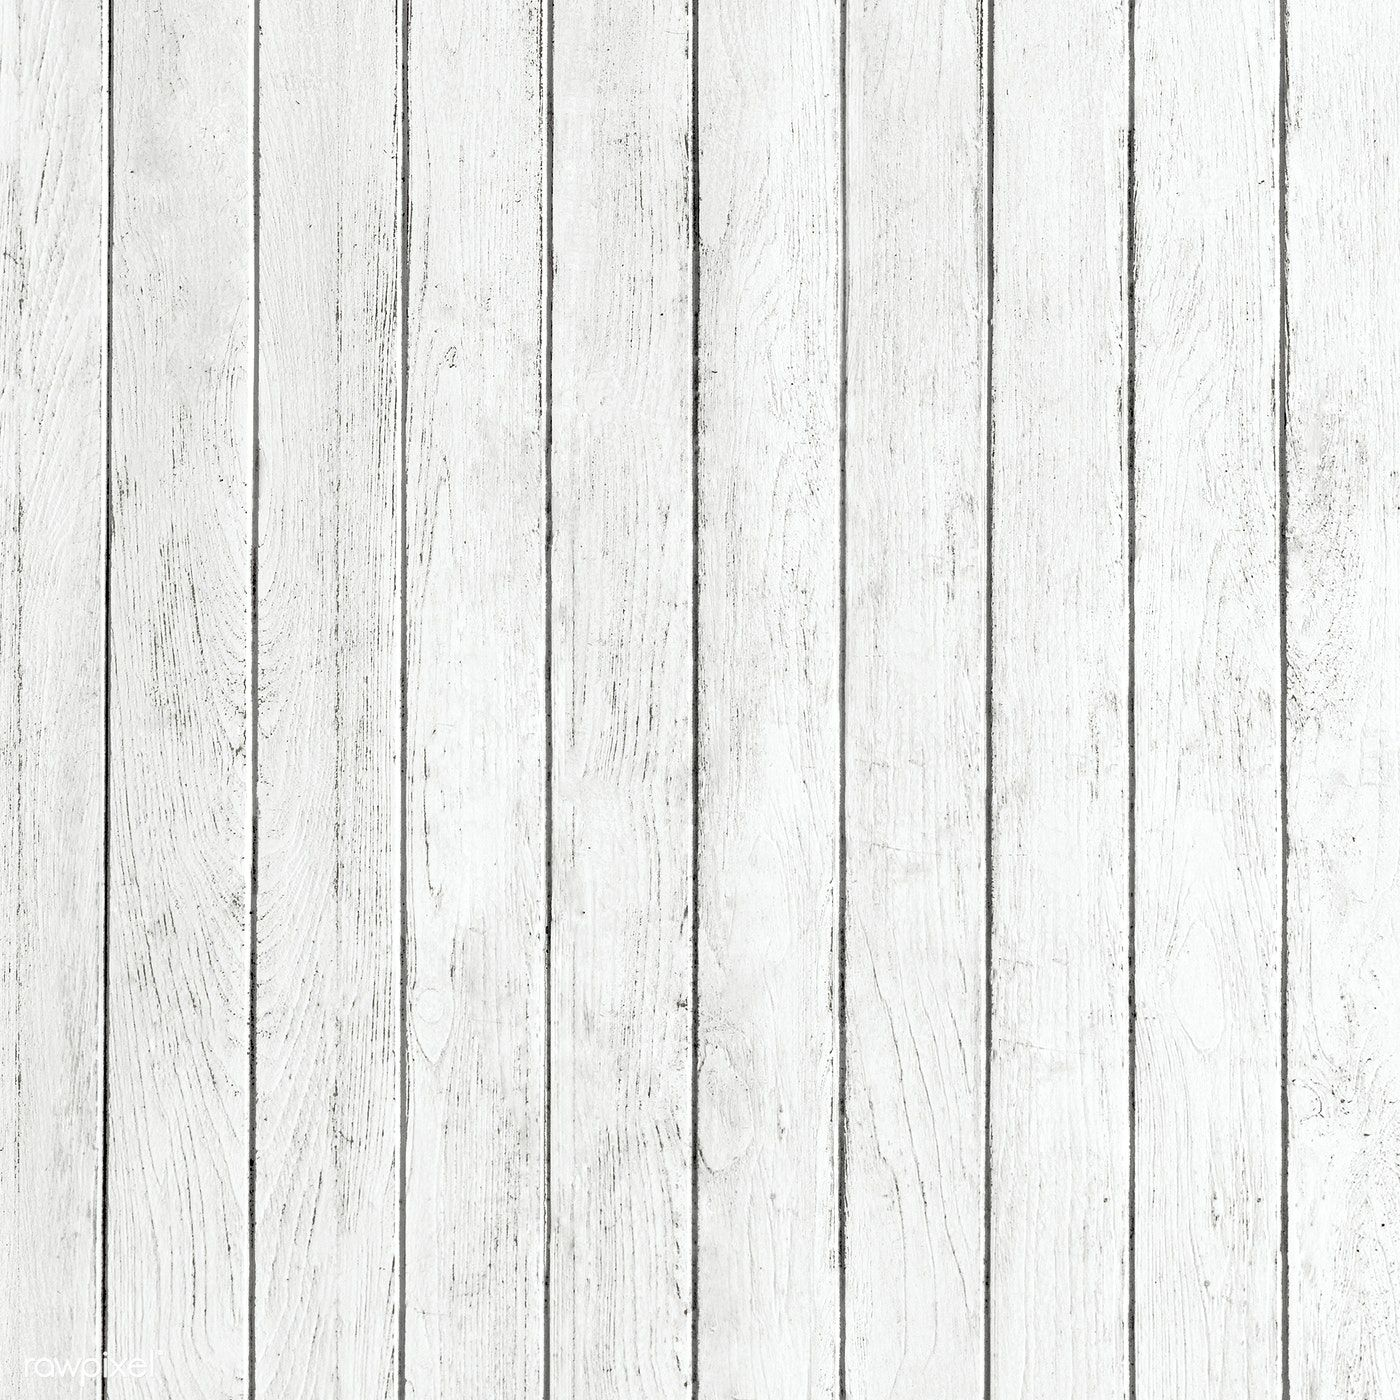 Rustic White Wood Texture Background Design Free Image By Rawpixel Com Nunny In 2020 White Wood Texture Wood Texture Grey Wood Texture